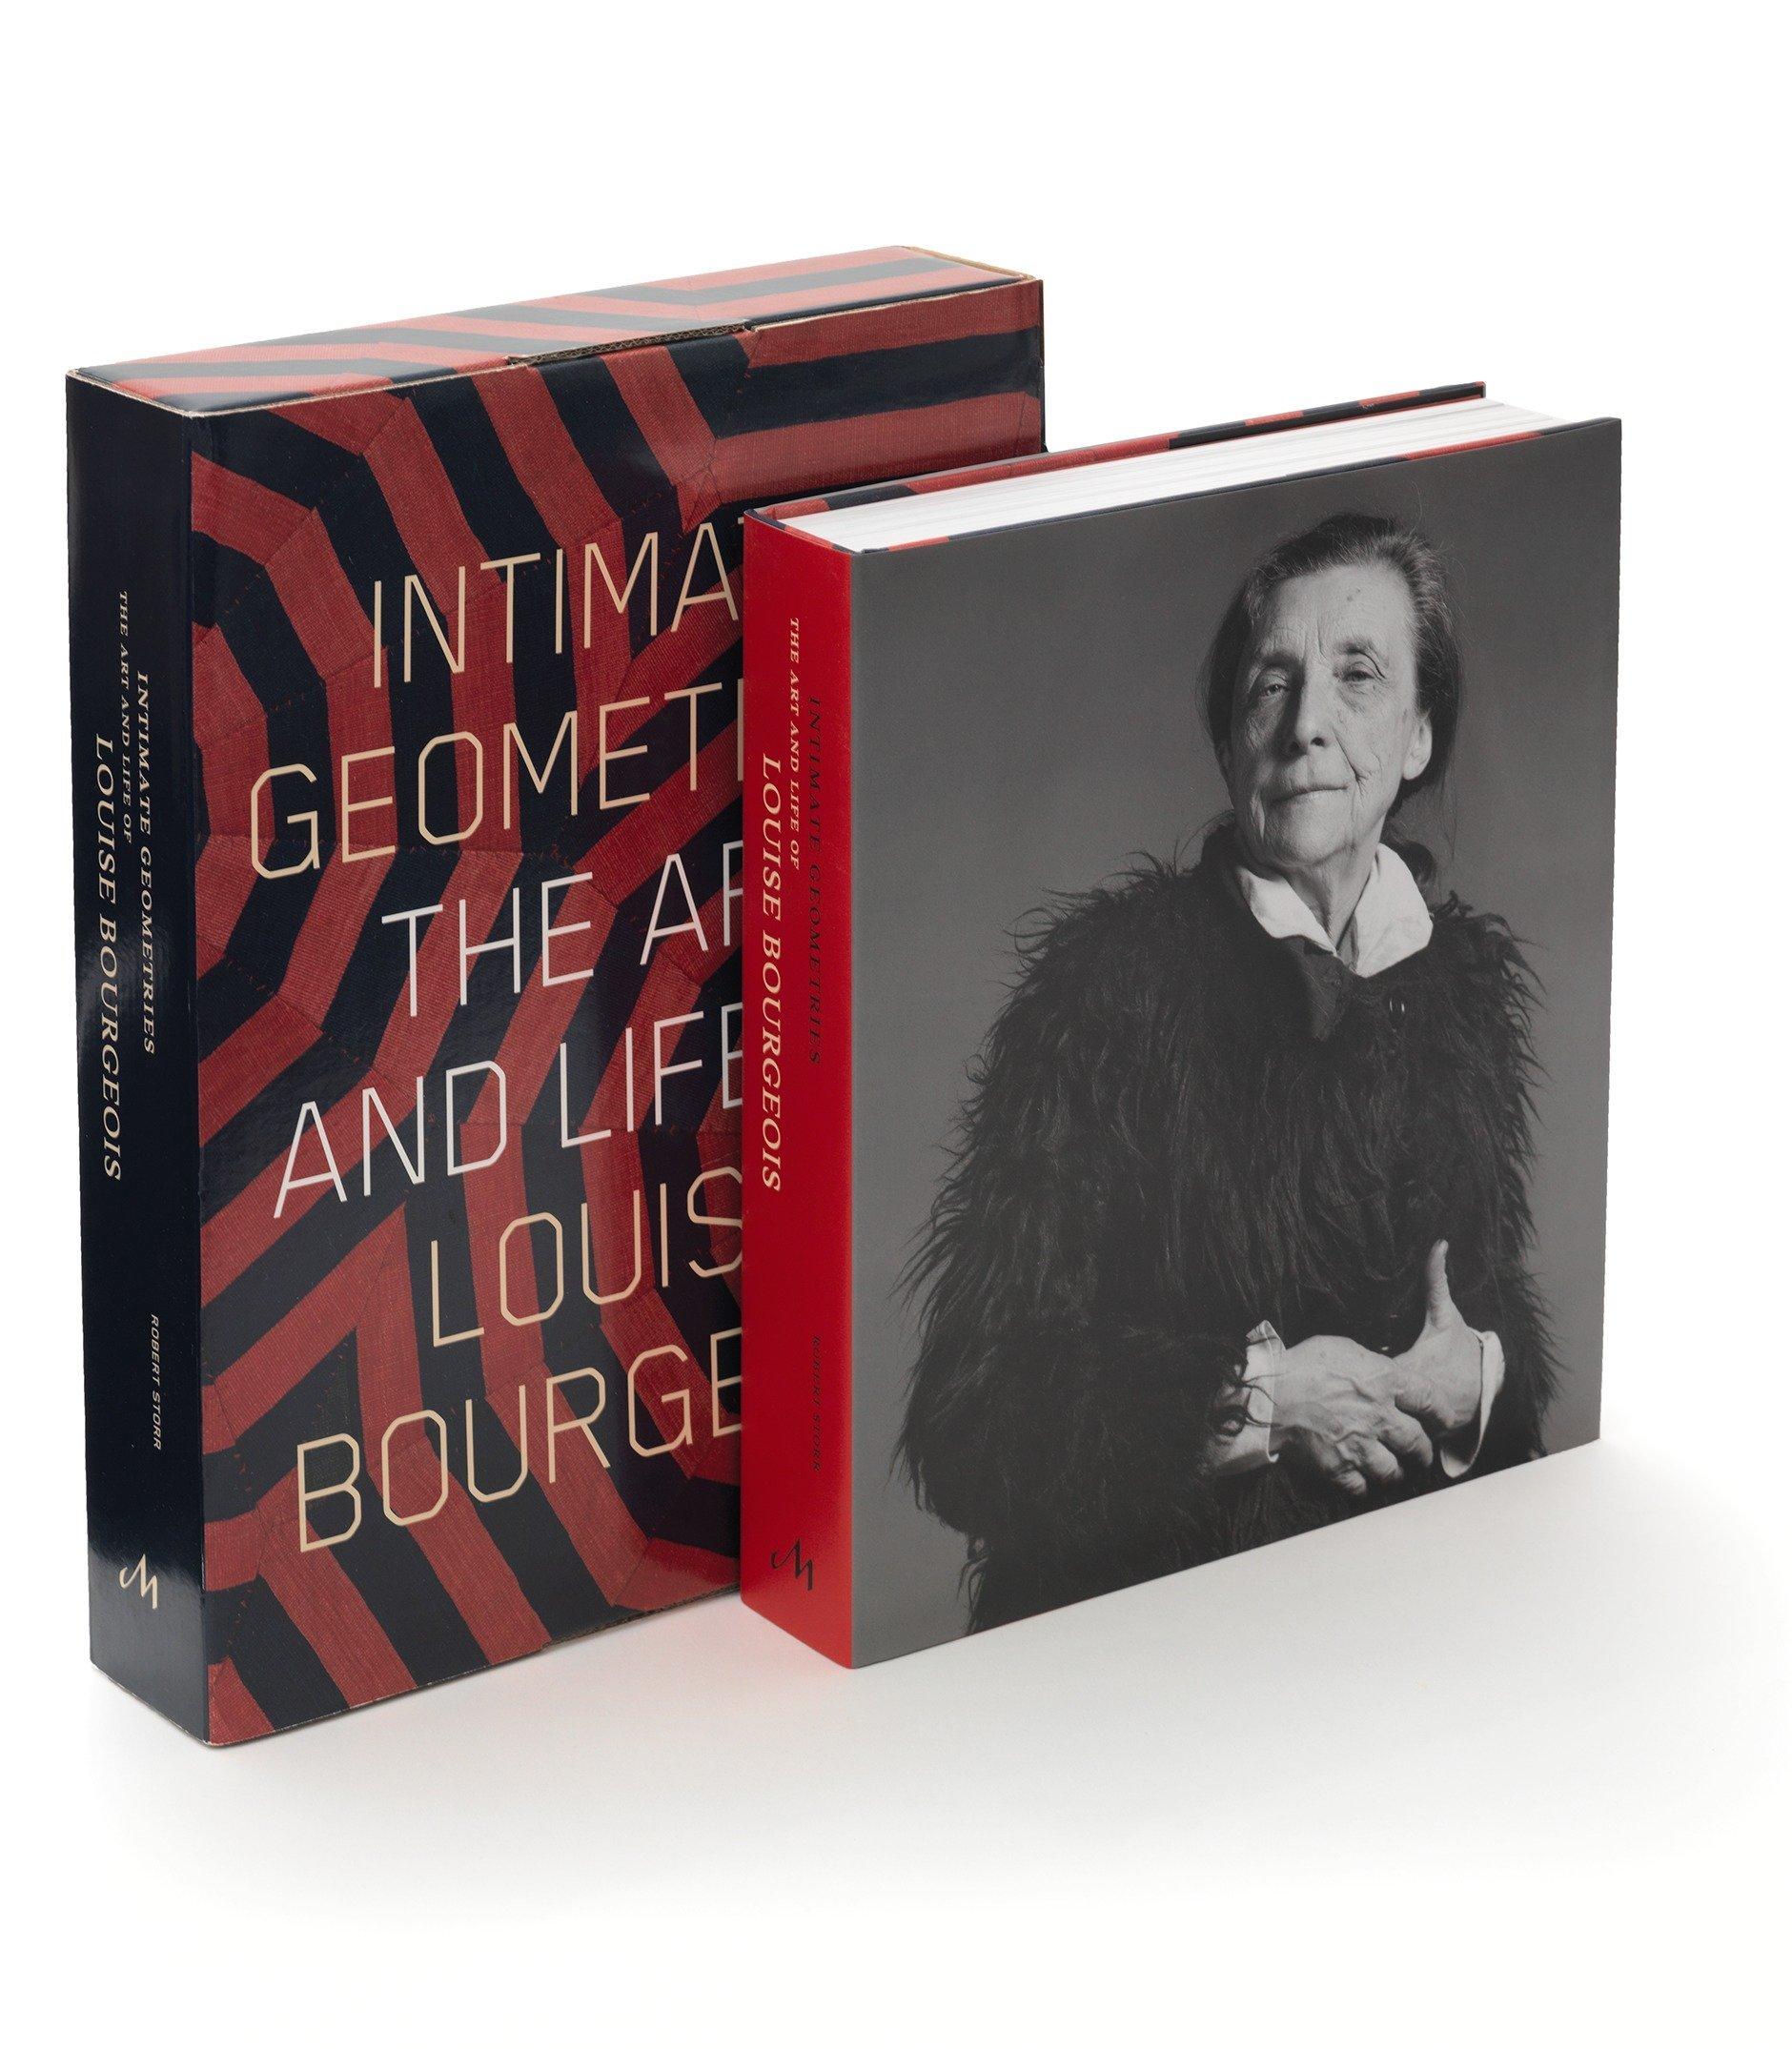 Intimate Geometries: The Art and Life of Louise Bourgeois by Monacelli Press